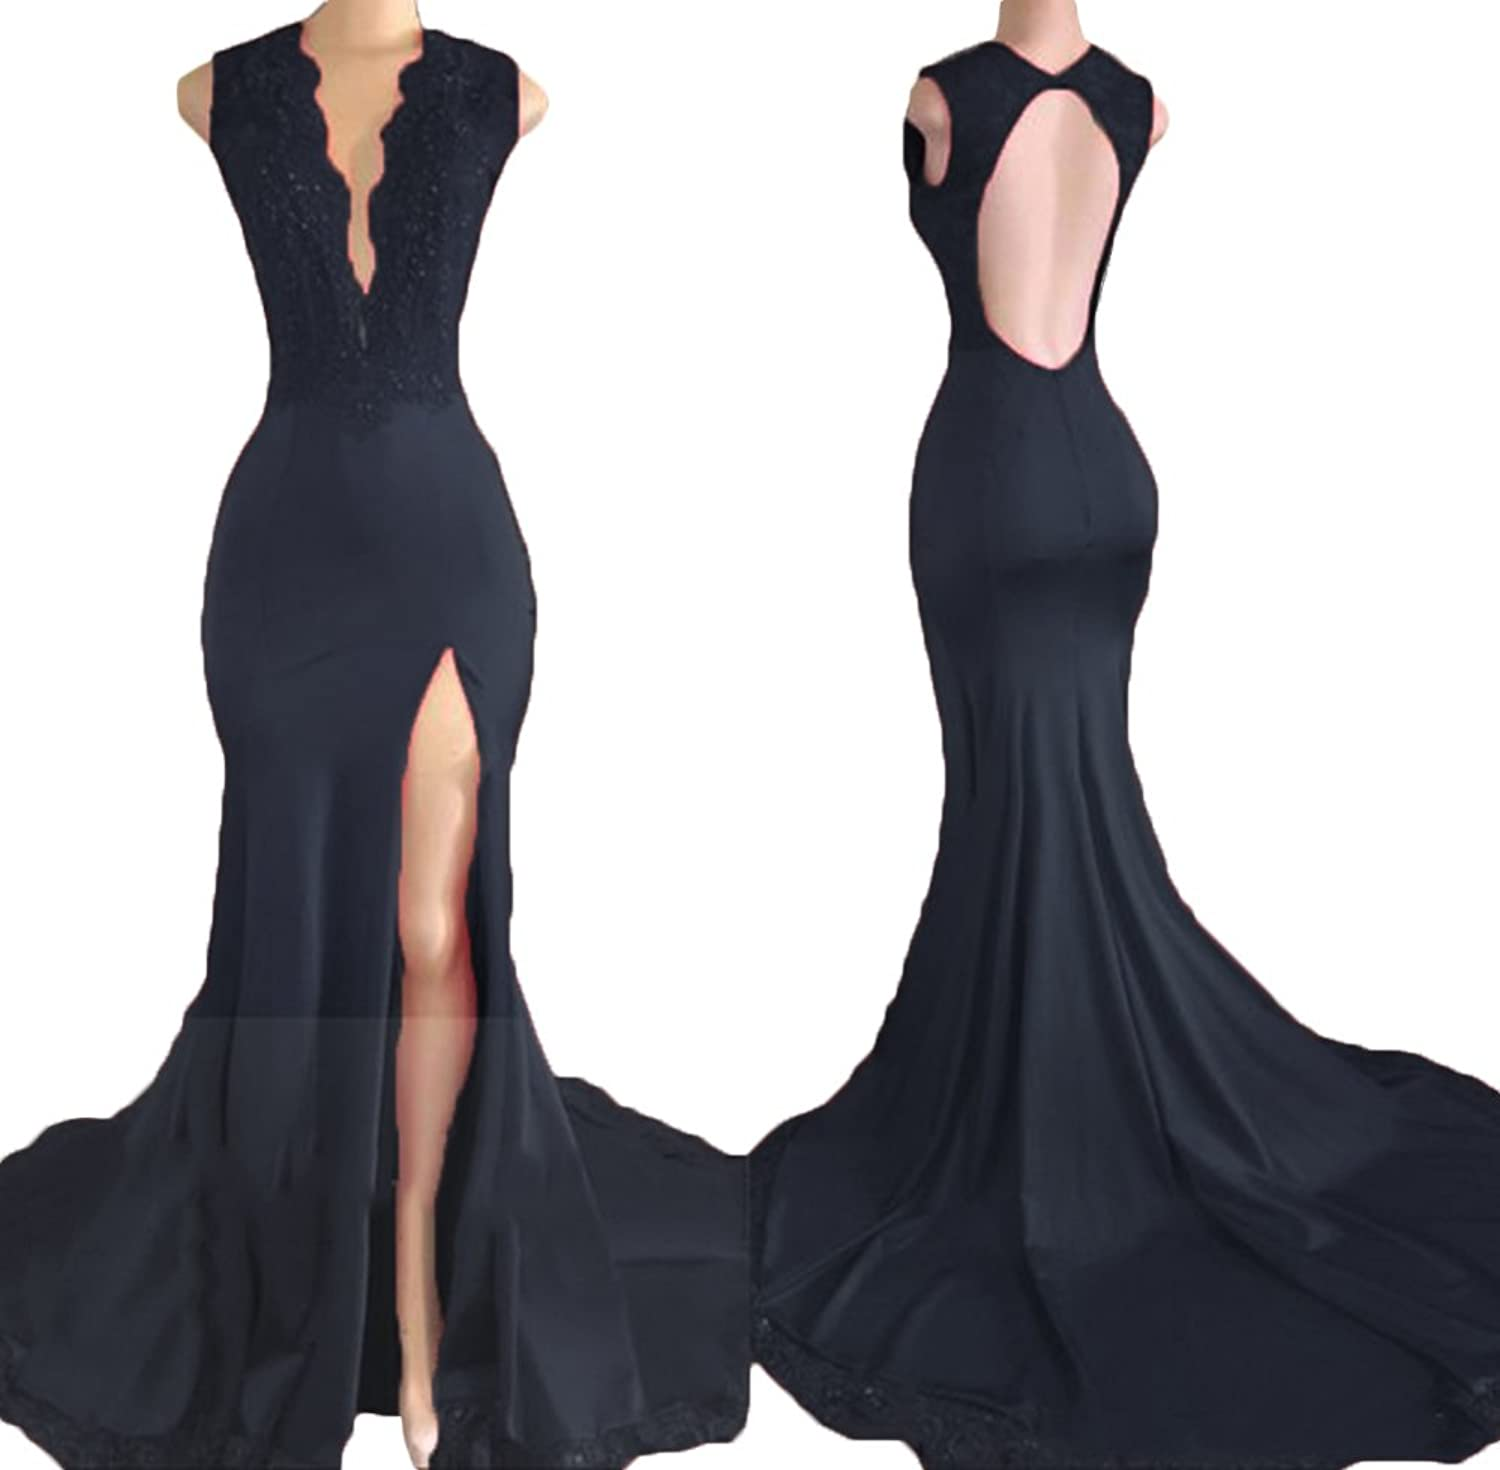 Ri Yun Sexy Backless Deep VNeck Side Slit Mermaid Prom Dress Evening Gowns 2018 for Women with Lace Sequins